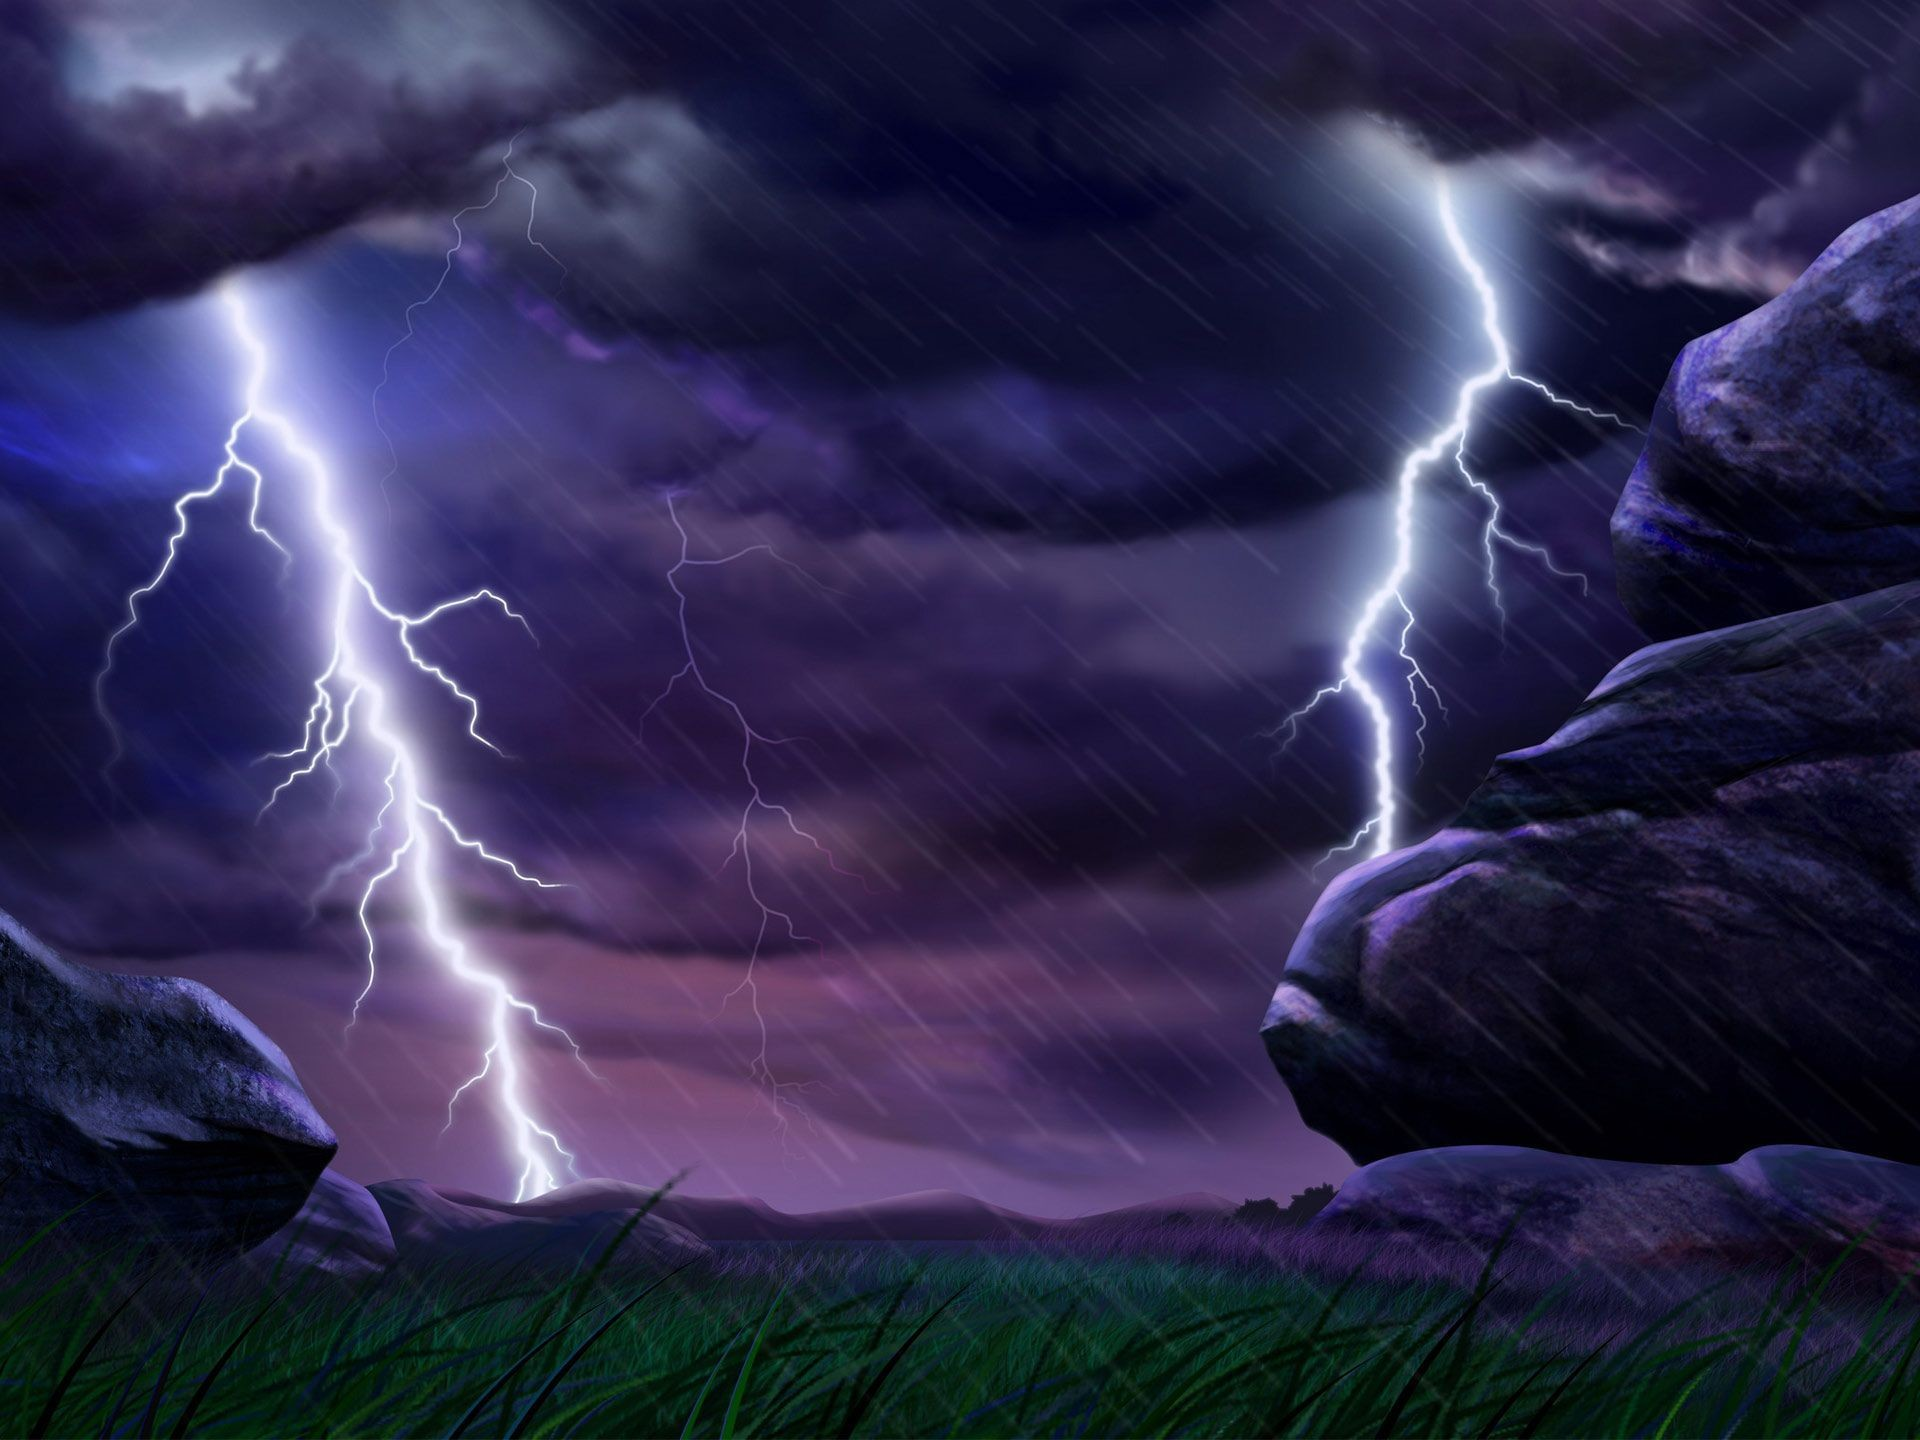 1920x1440 Cool Lightning Backgrounds